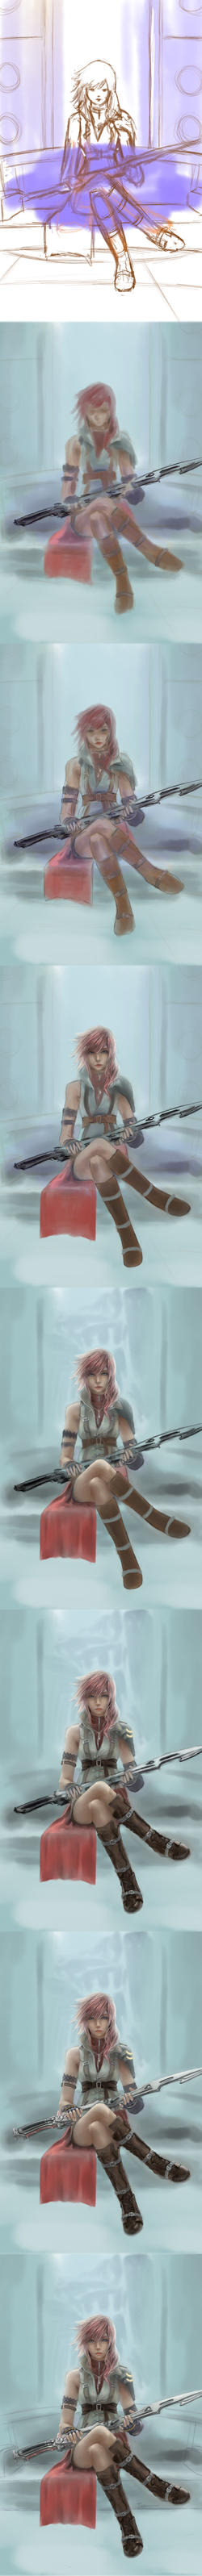 Lightning - Step-by-step by ticibr